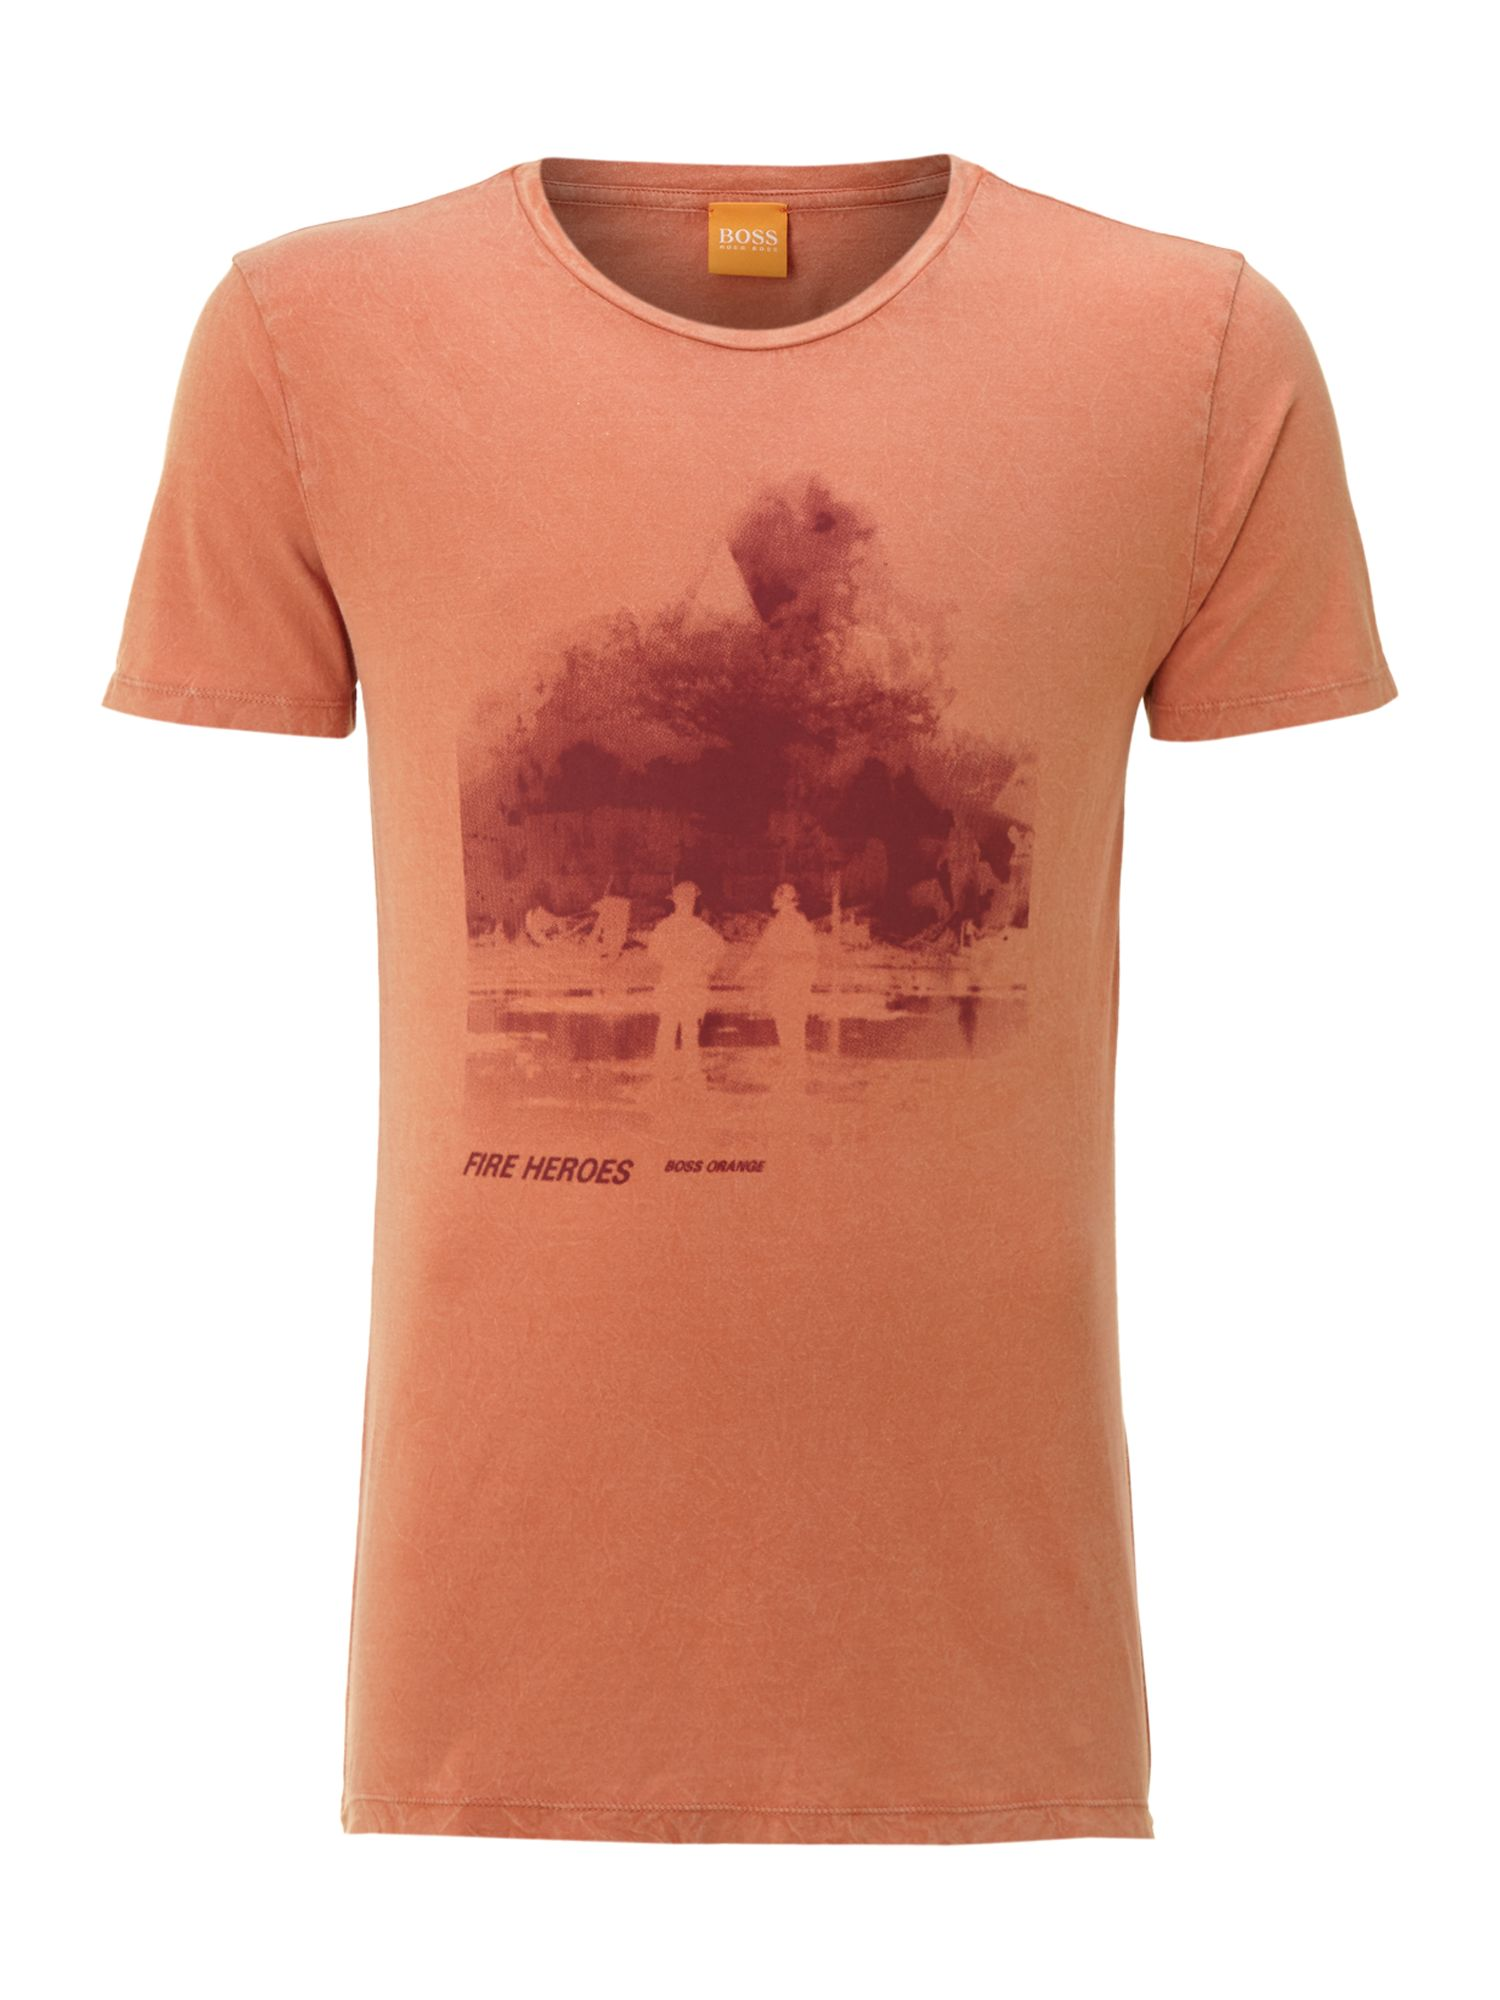 hugo boss fireman print tshirt in orange for men lyst. Black Bedroom Furniture Sets. Home Design Ideas